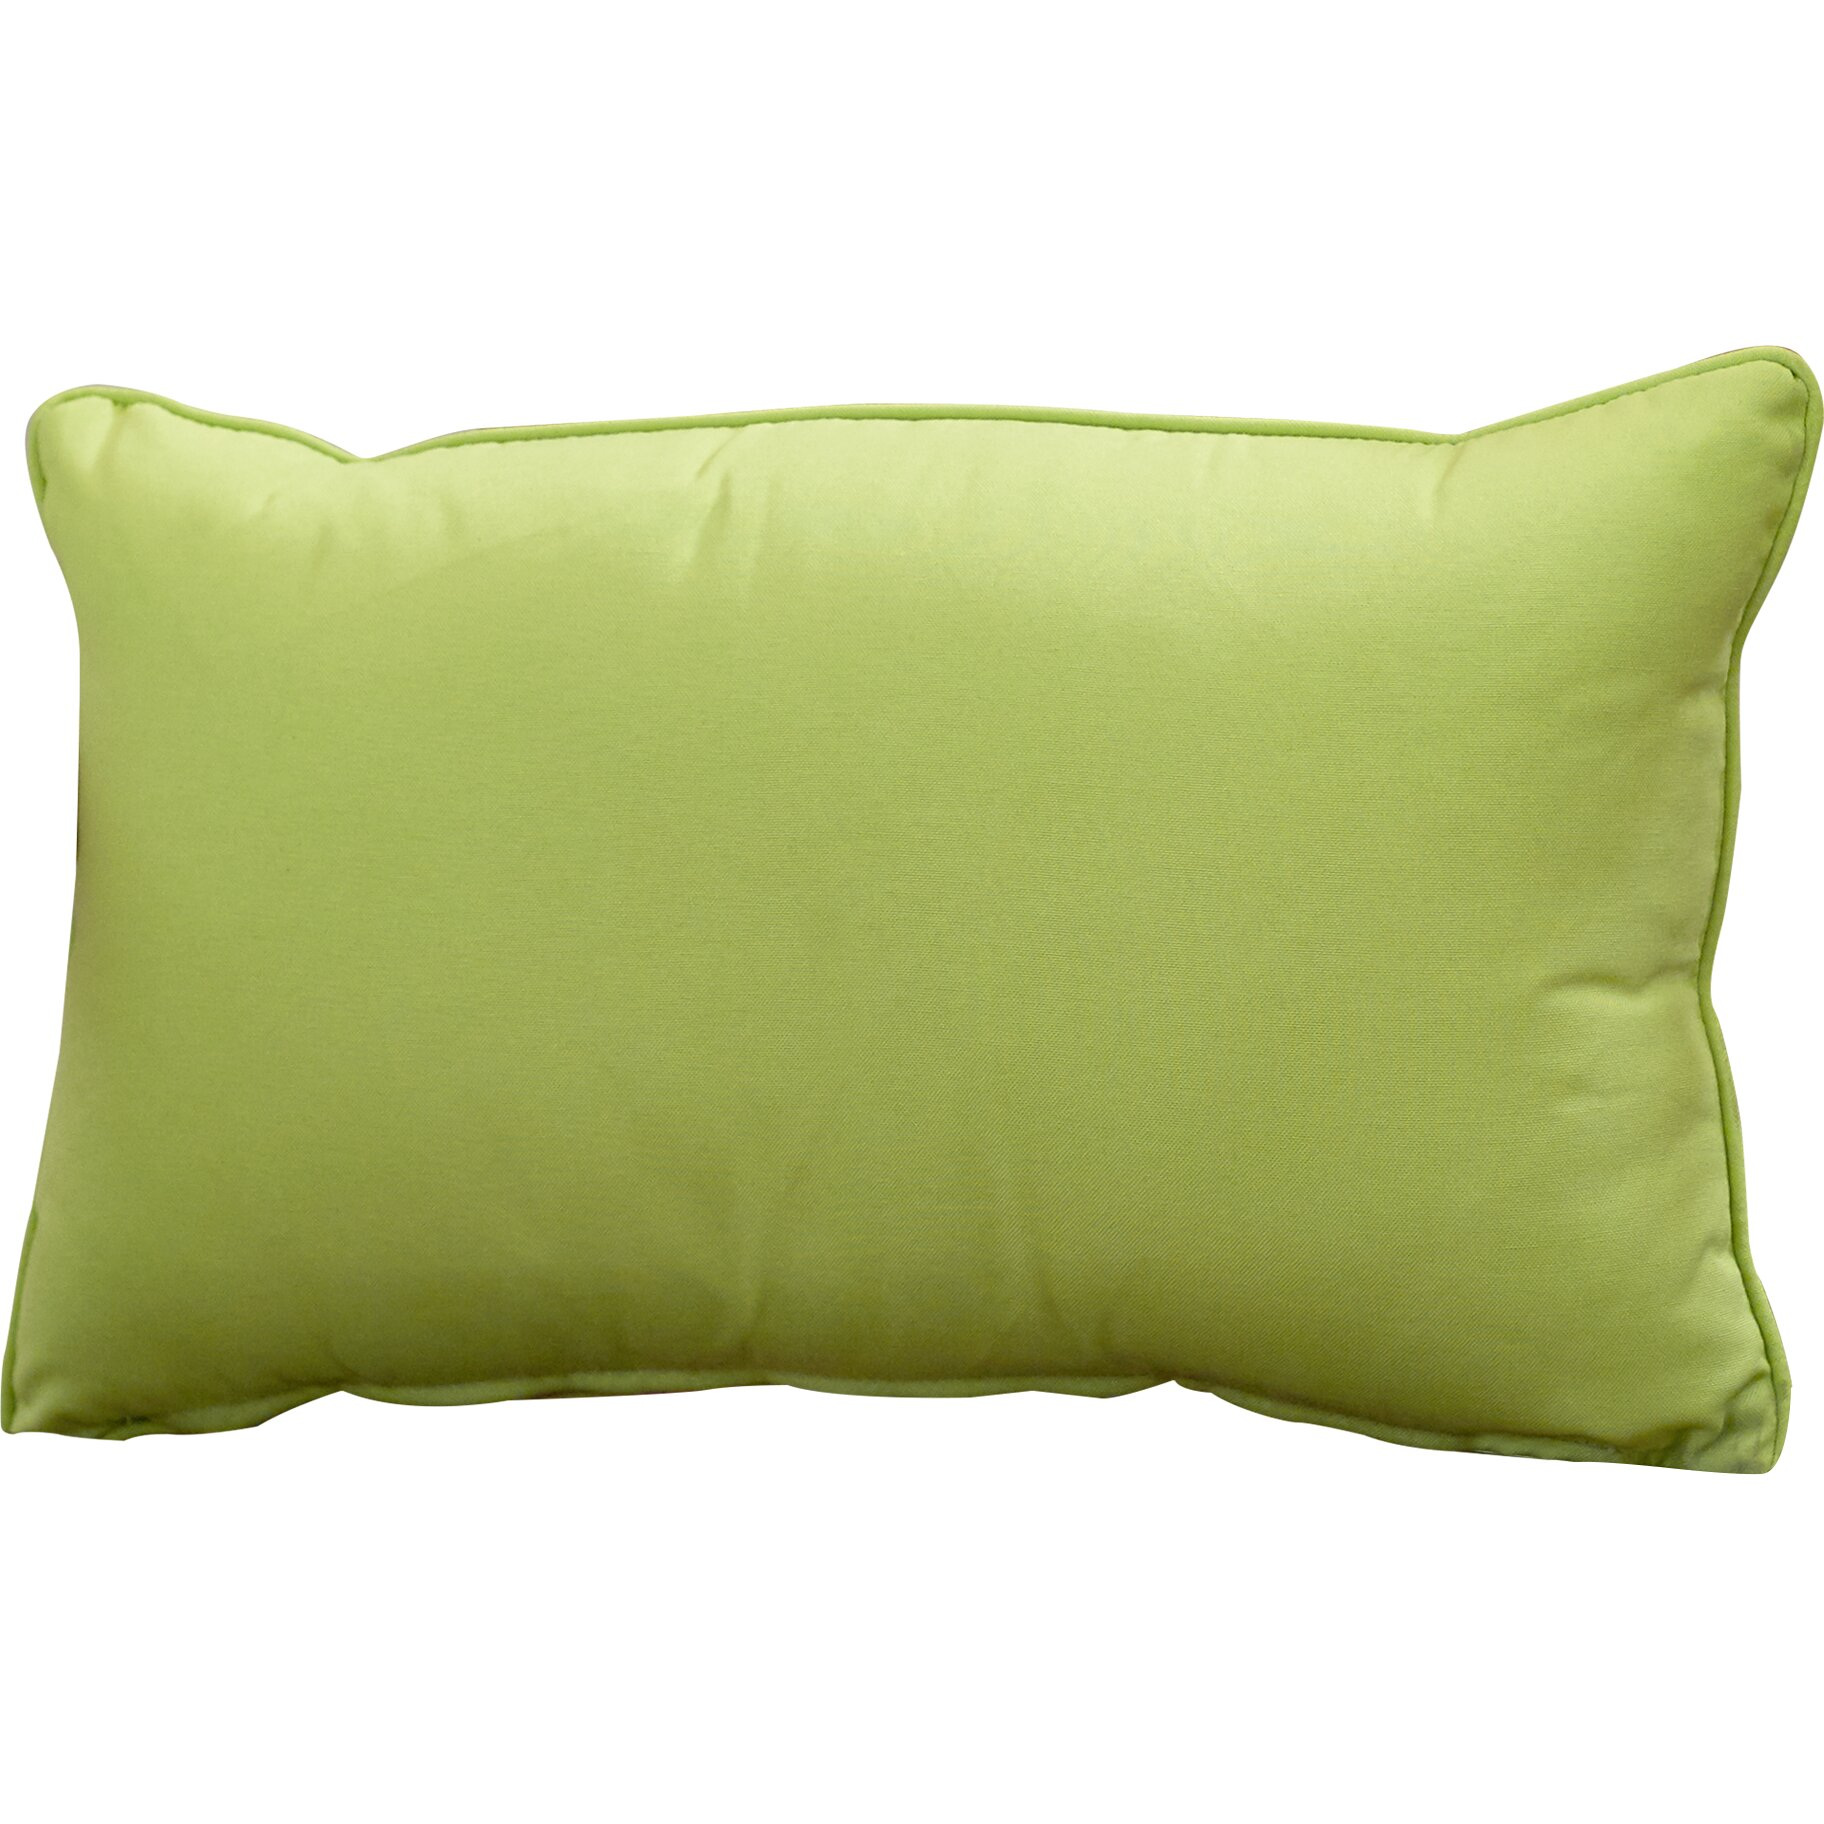 Wayfair Custom Outdoor Cushions Outdoor Lumbar Pillow